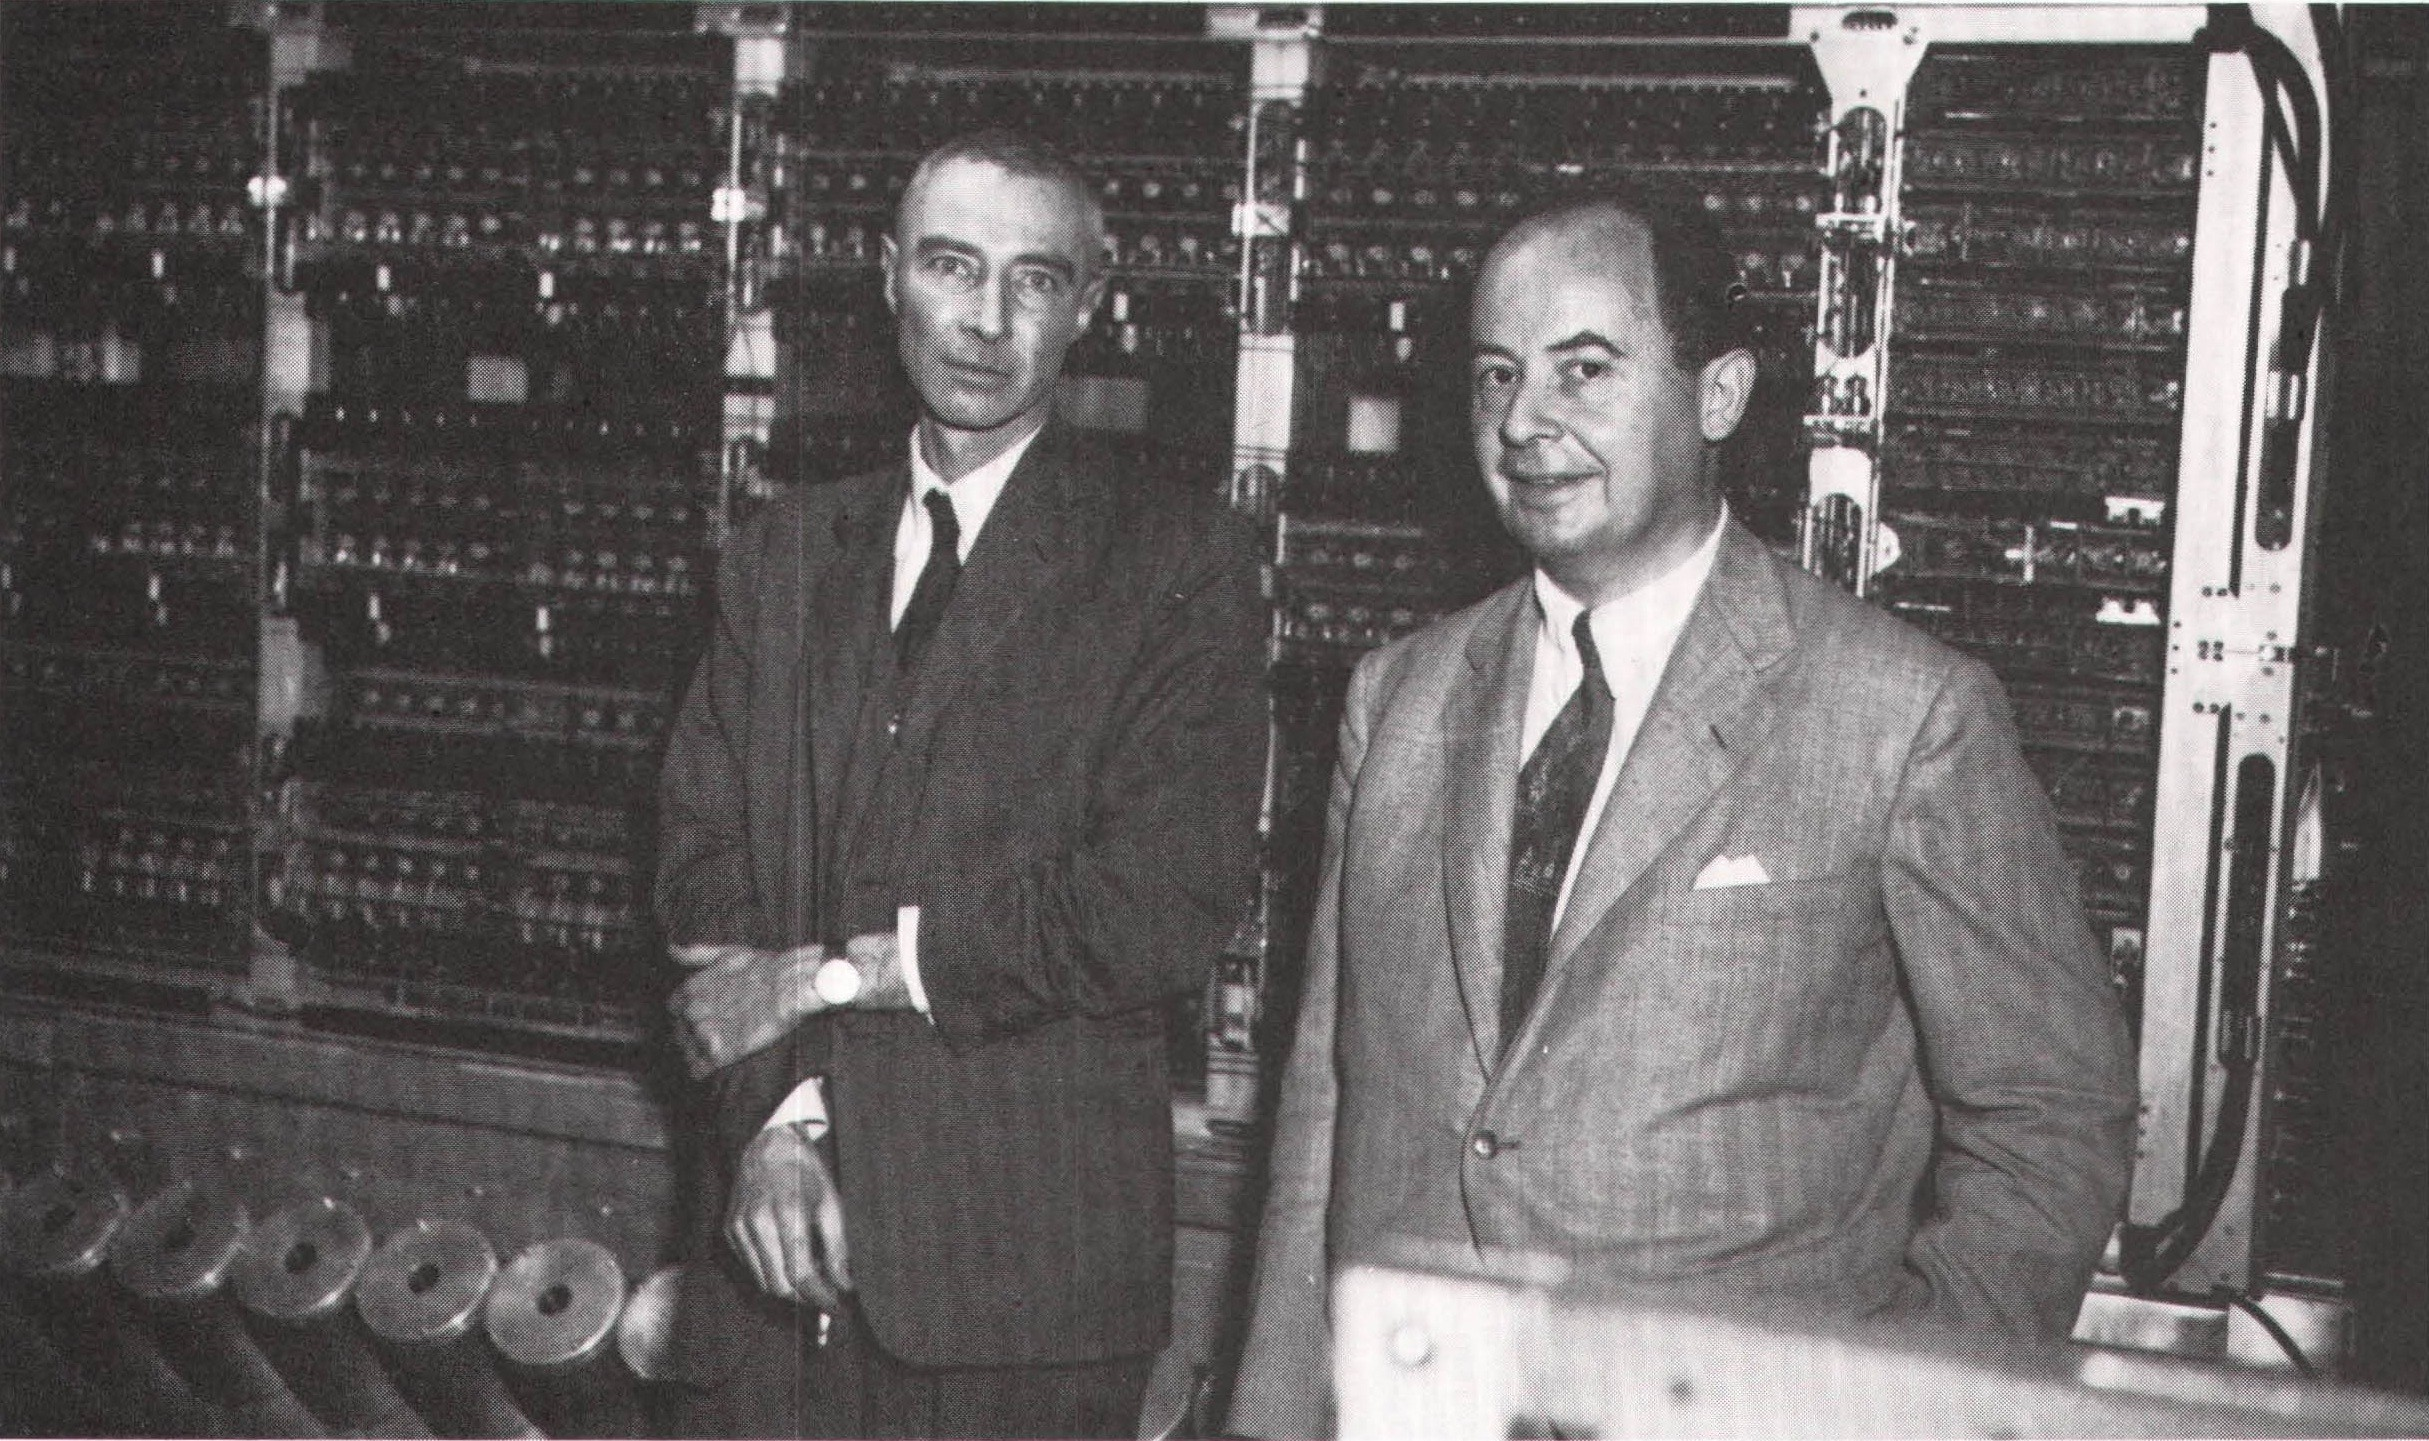 A memory chip in a modern cellphone has a million times more capacity than John Von Neumann's IAS Machine